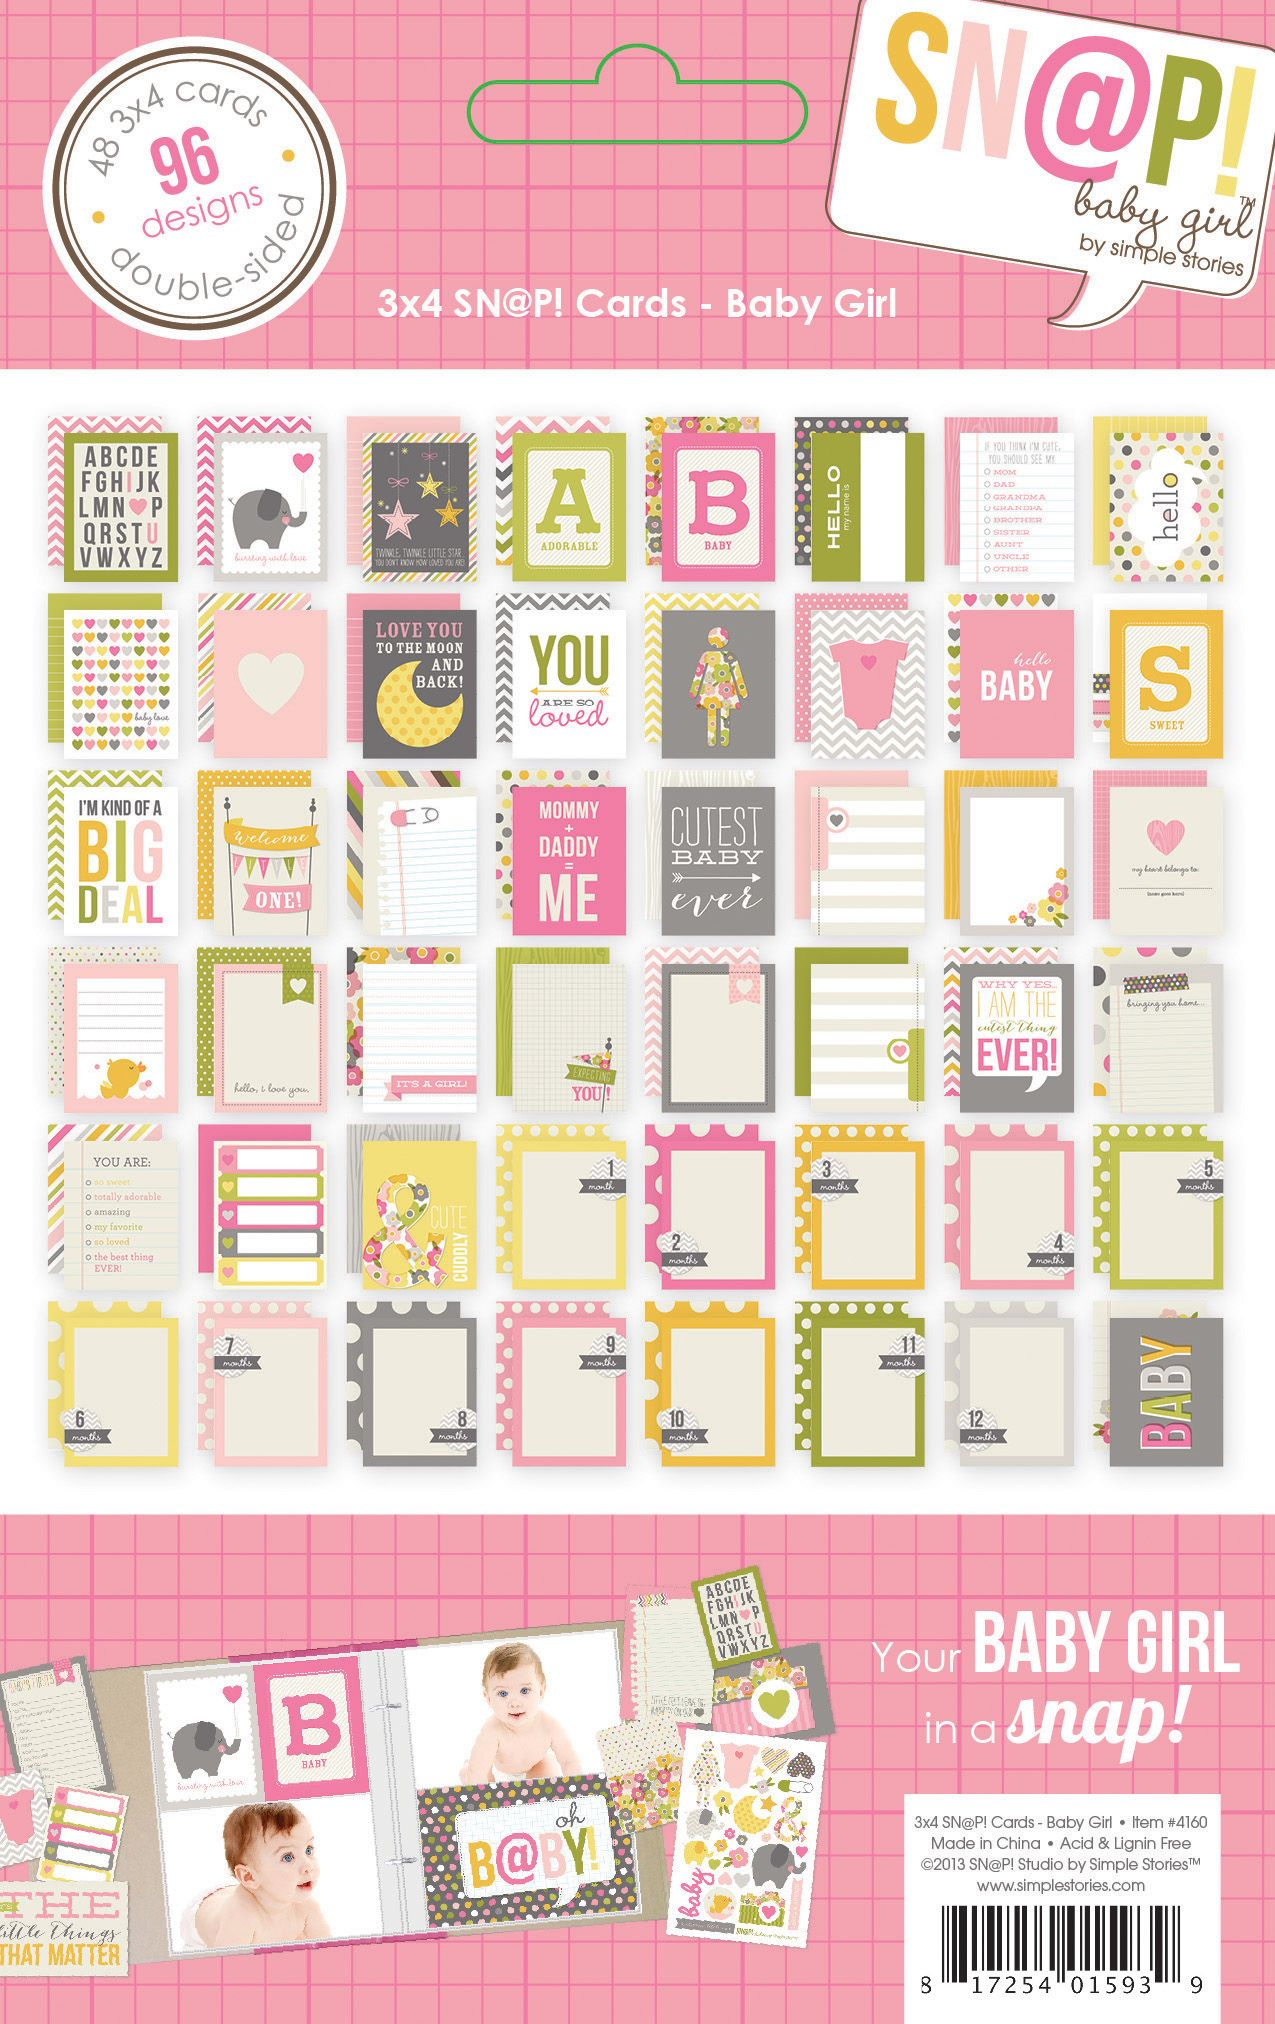 Simple Stories   Baby Girl   3x4 SN@P! Cards